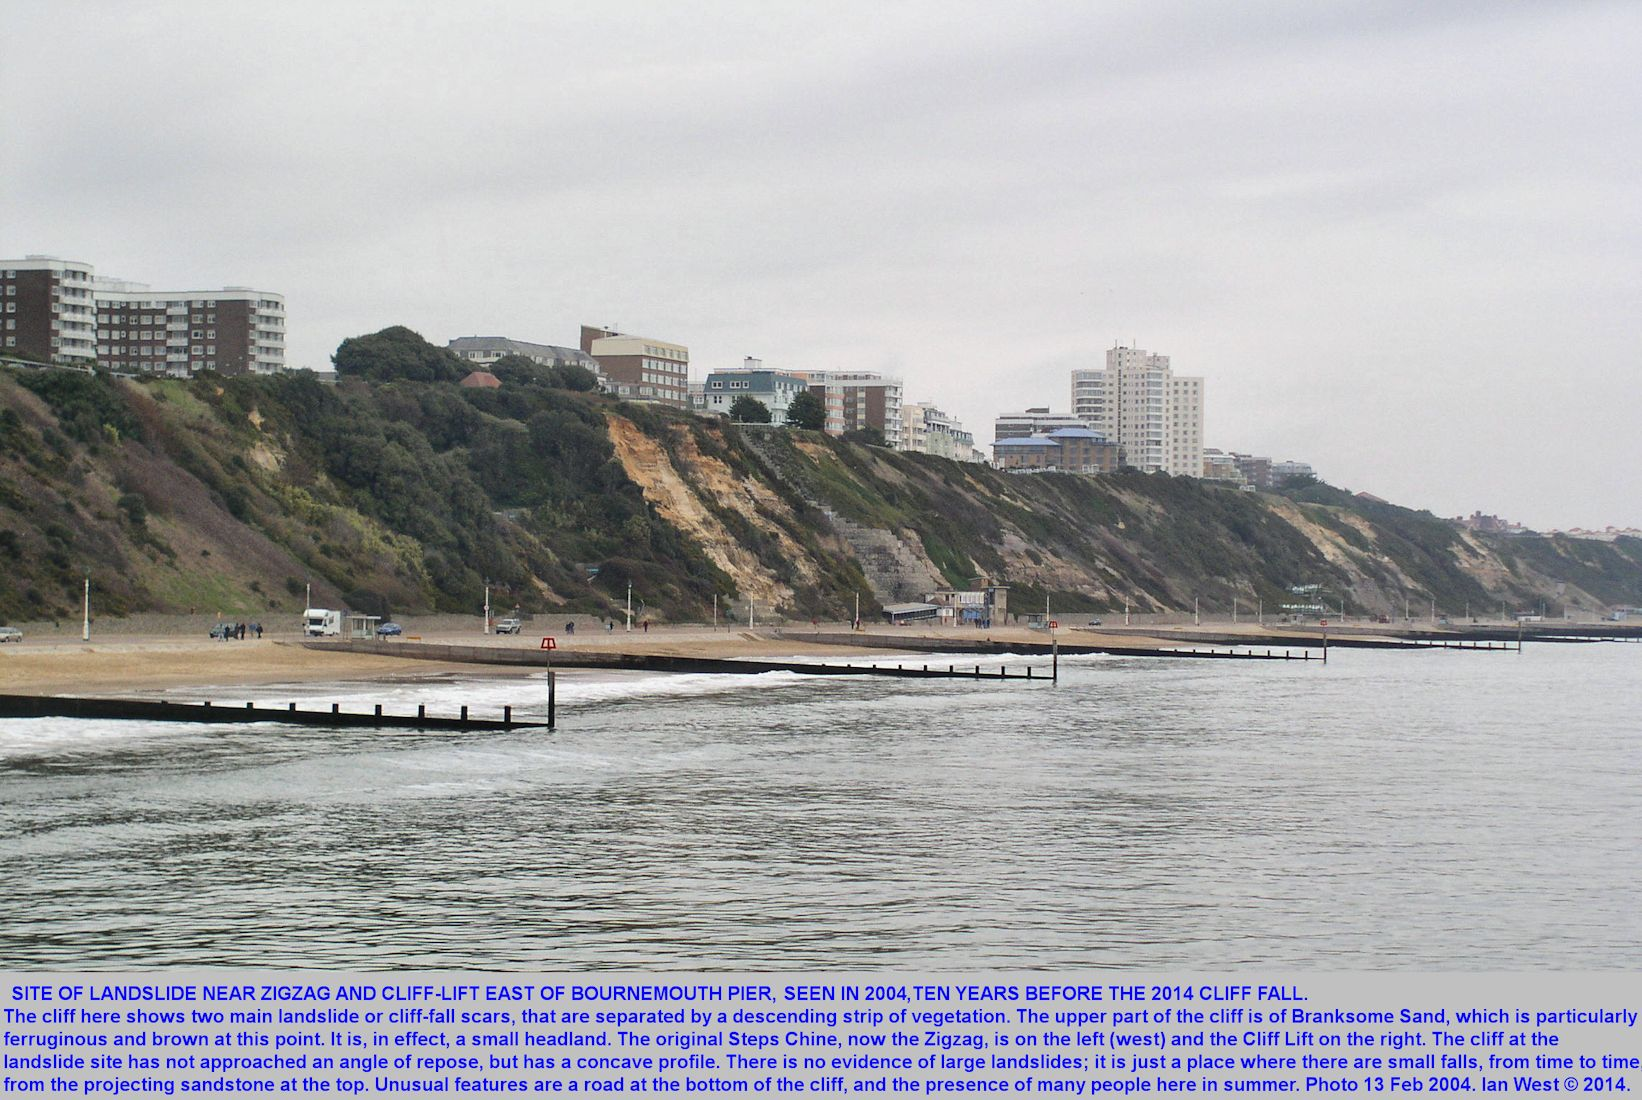 An old photograph of 2004, showing the original form of the cliff at the site of the fall of Boscombe Sands on the night of the 20th to 21st February 2014, between the Zizag Path and the Cliff Lift, east of Bournemouth Pier, Dorset